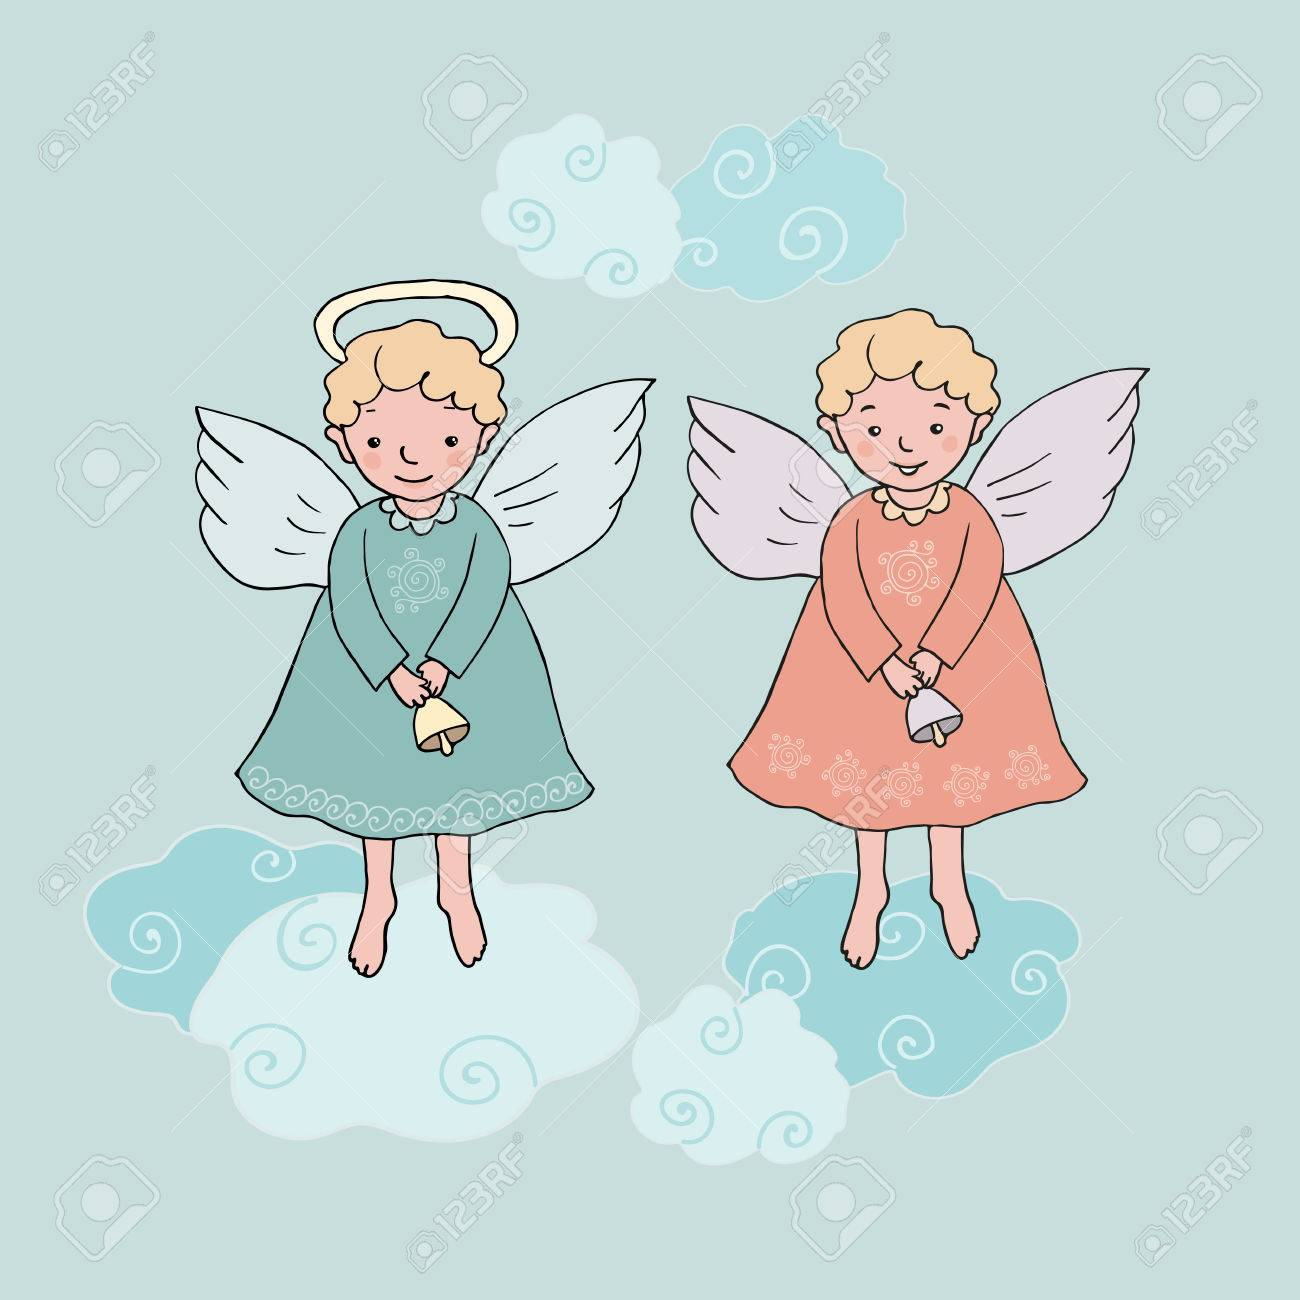 Christmas Angels.Hand Drawn Cute Christmas Angels With Bells In Cartoon Style